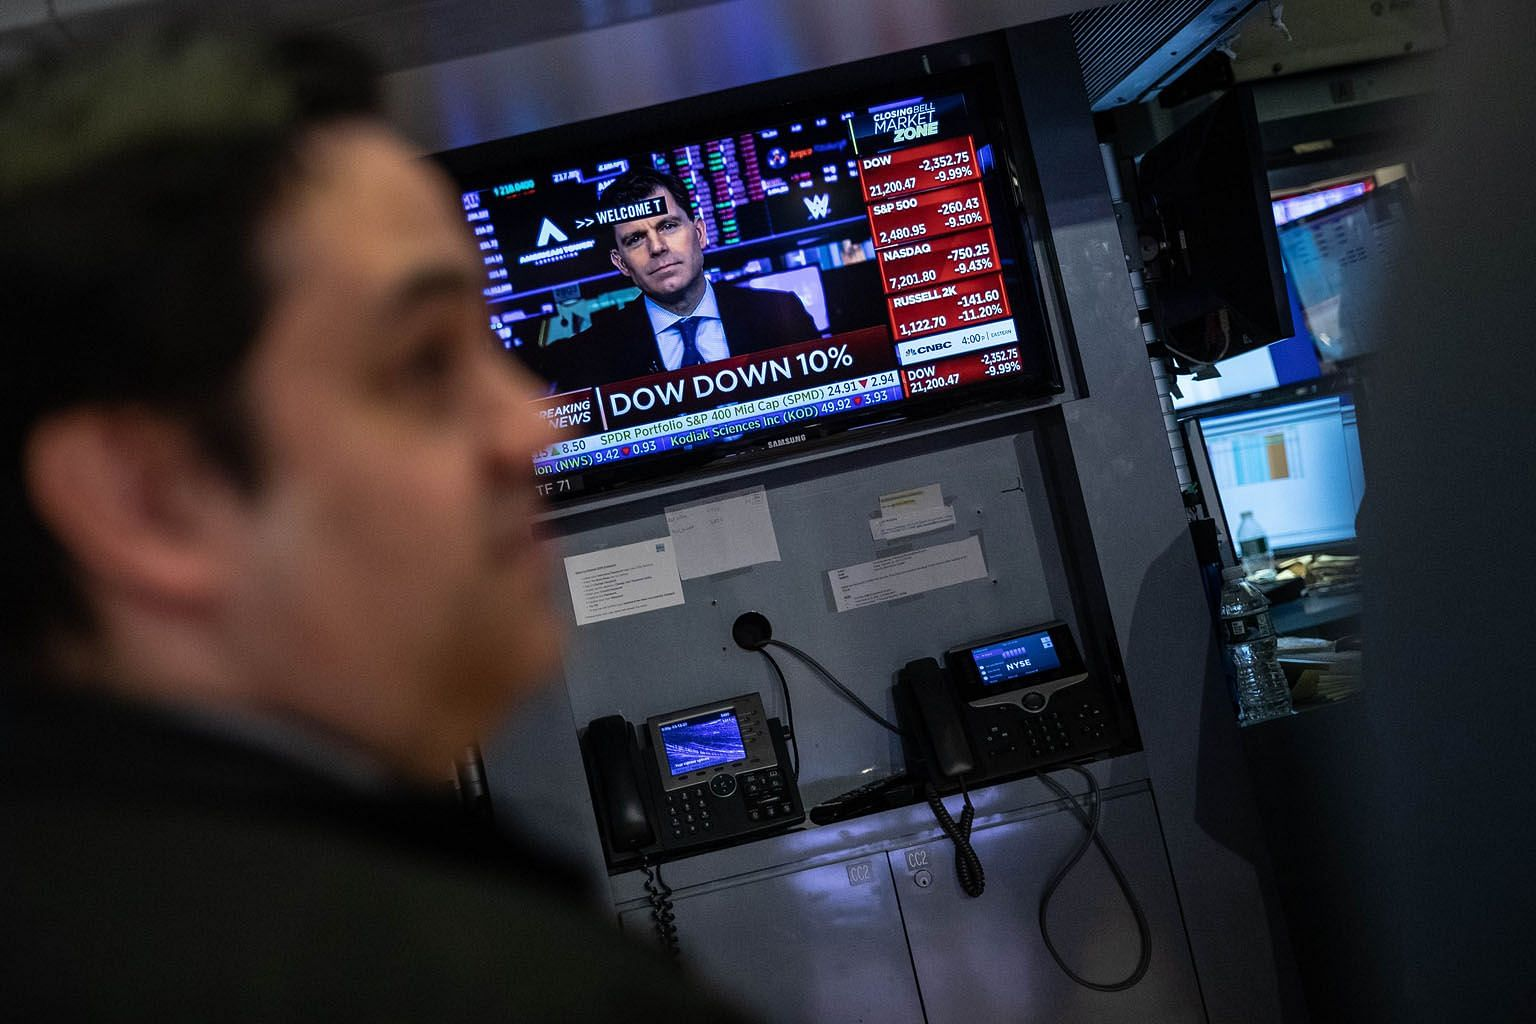 A trader at the New York Stock Exchange on Thursday. The falls overnight - the biggest on Wall Street since the October 1987 crash - sent the Straits Times Index plunging by as much as 6.3 per cent within the first hour of trading before it pared los